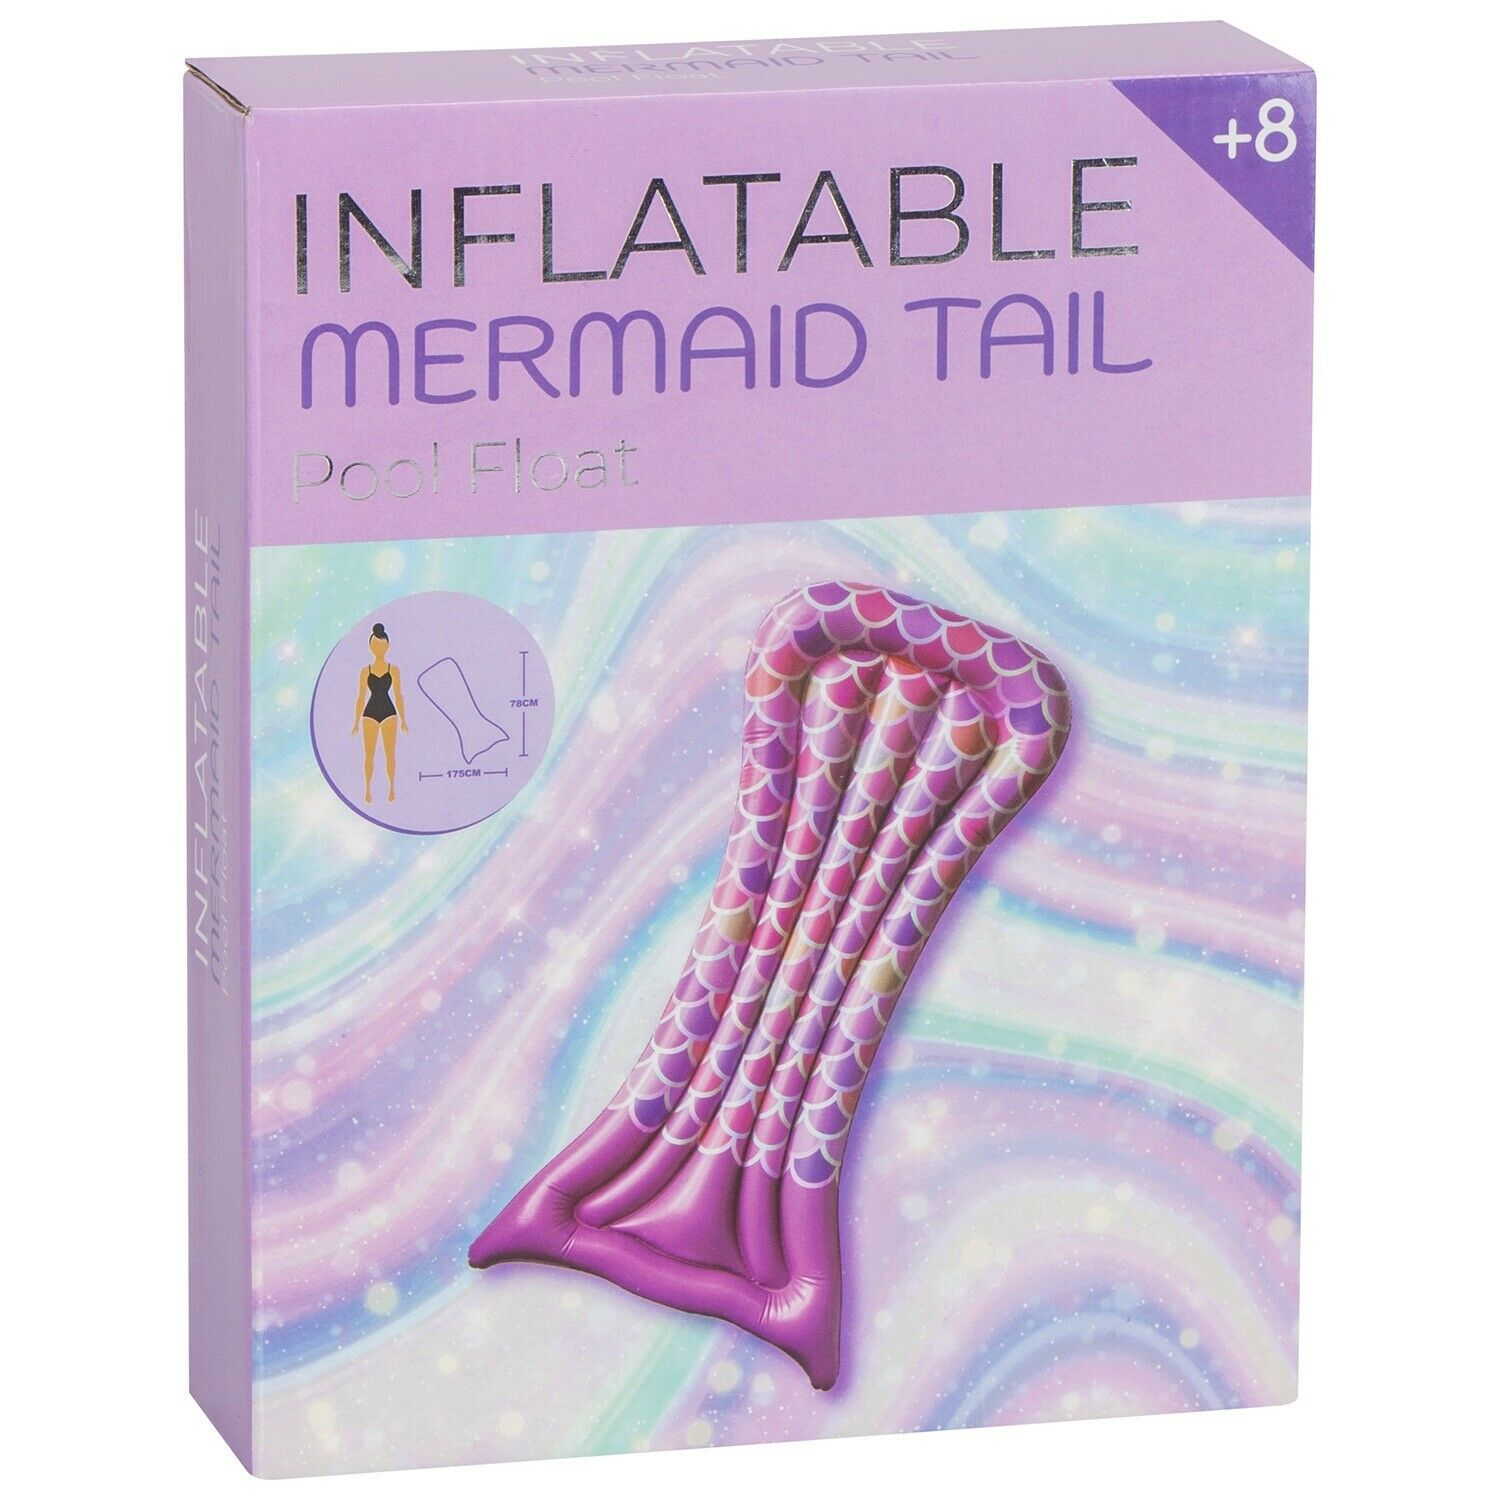 Pink Mermaid Tail Pool Floats - New & Boxed - High Quality - 12 Units Per Lot